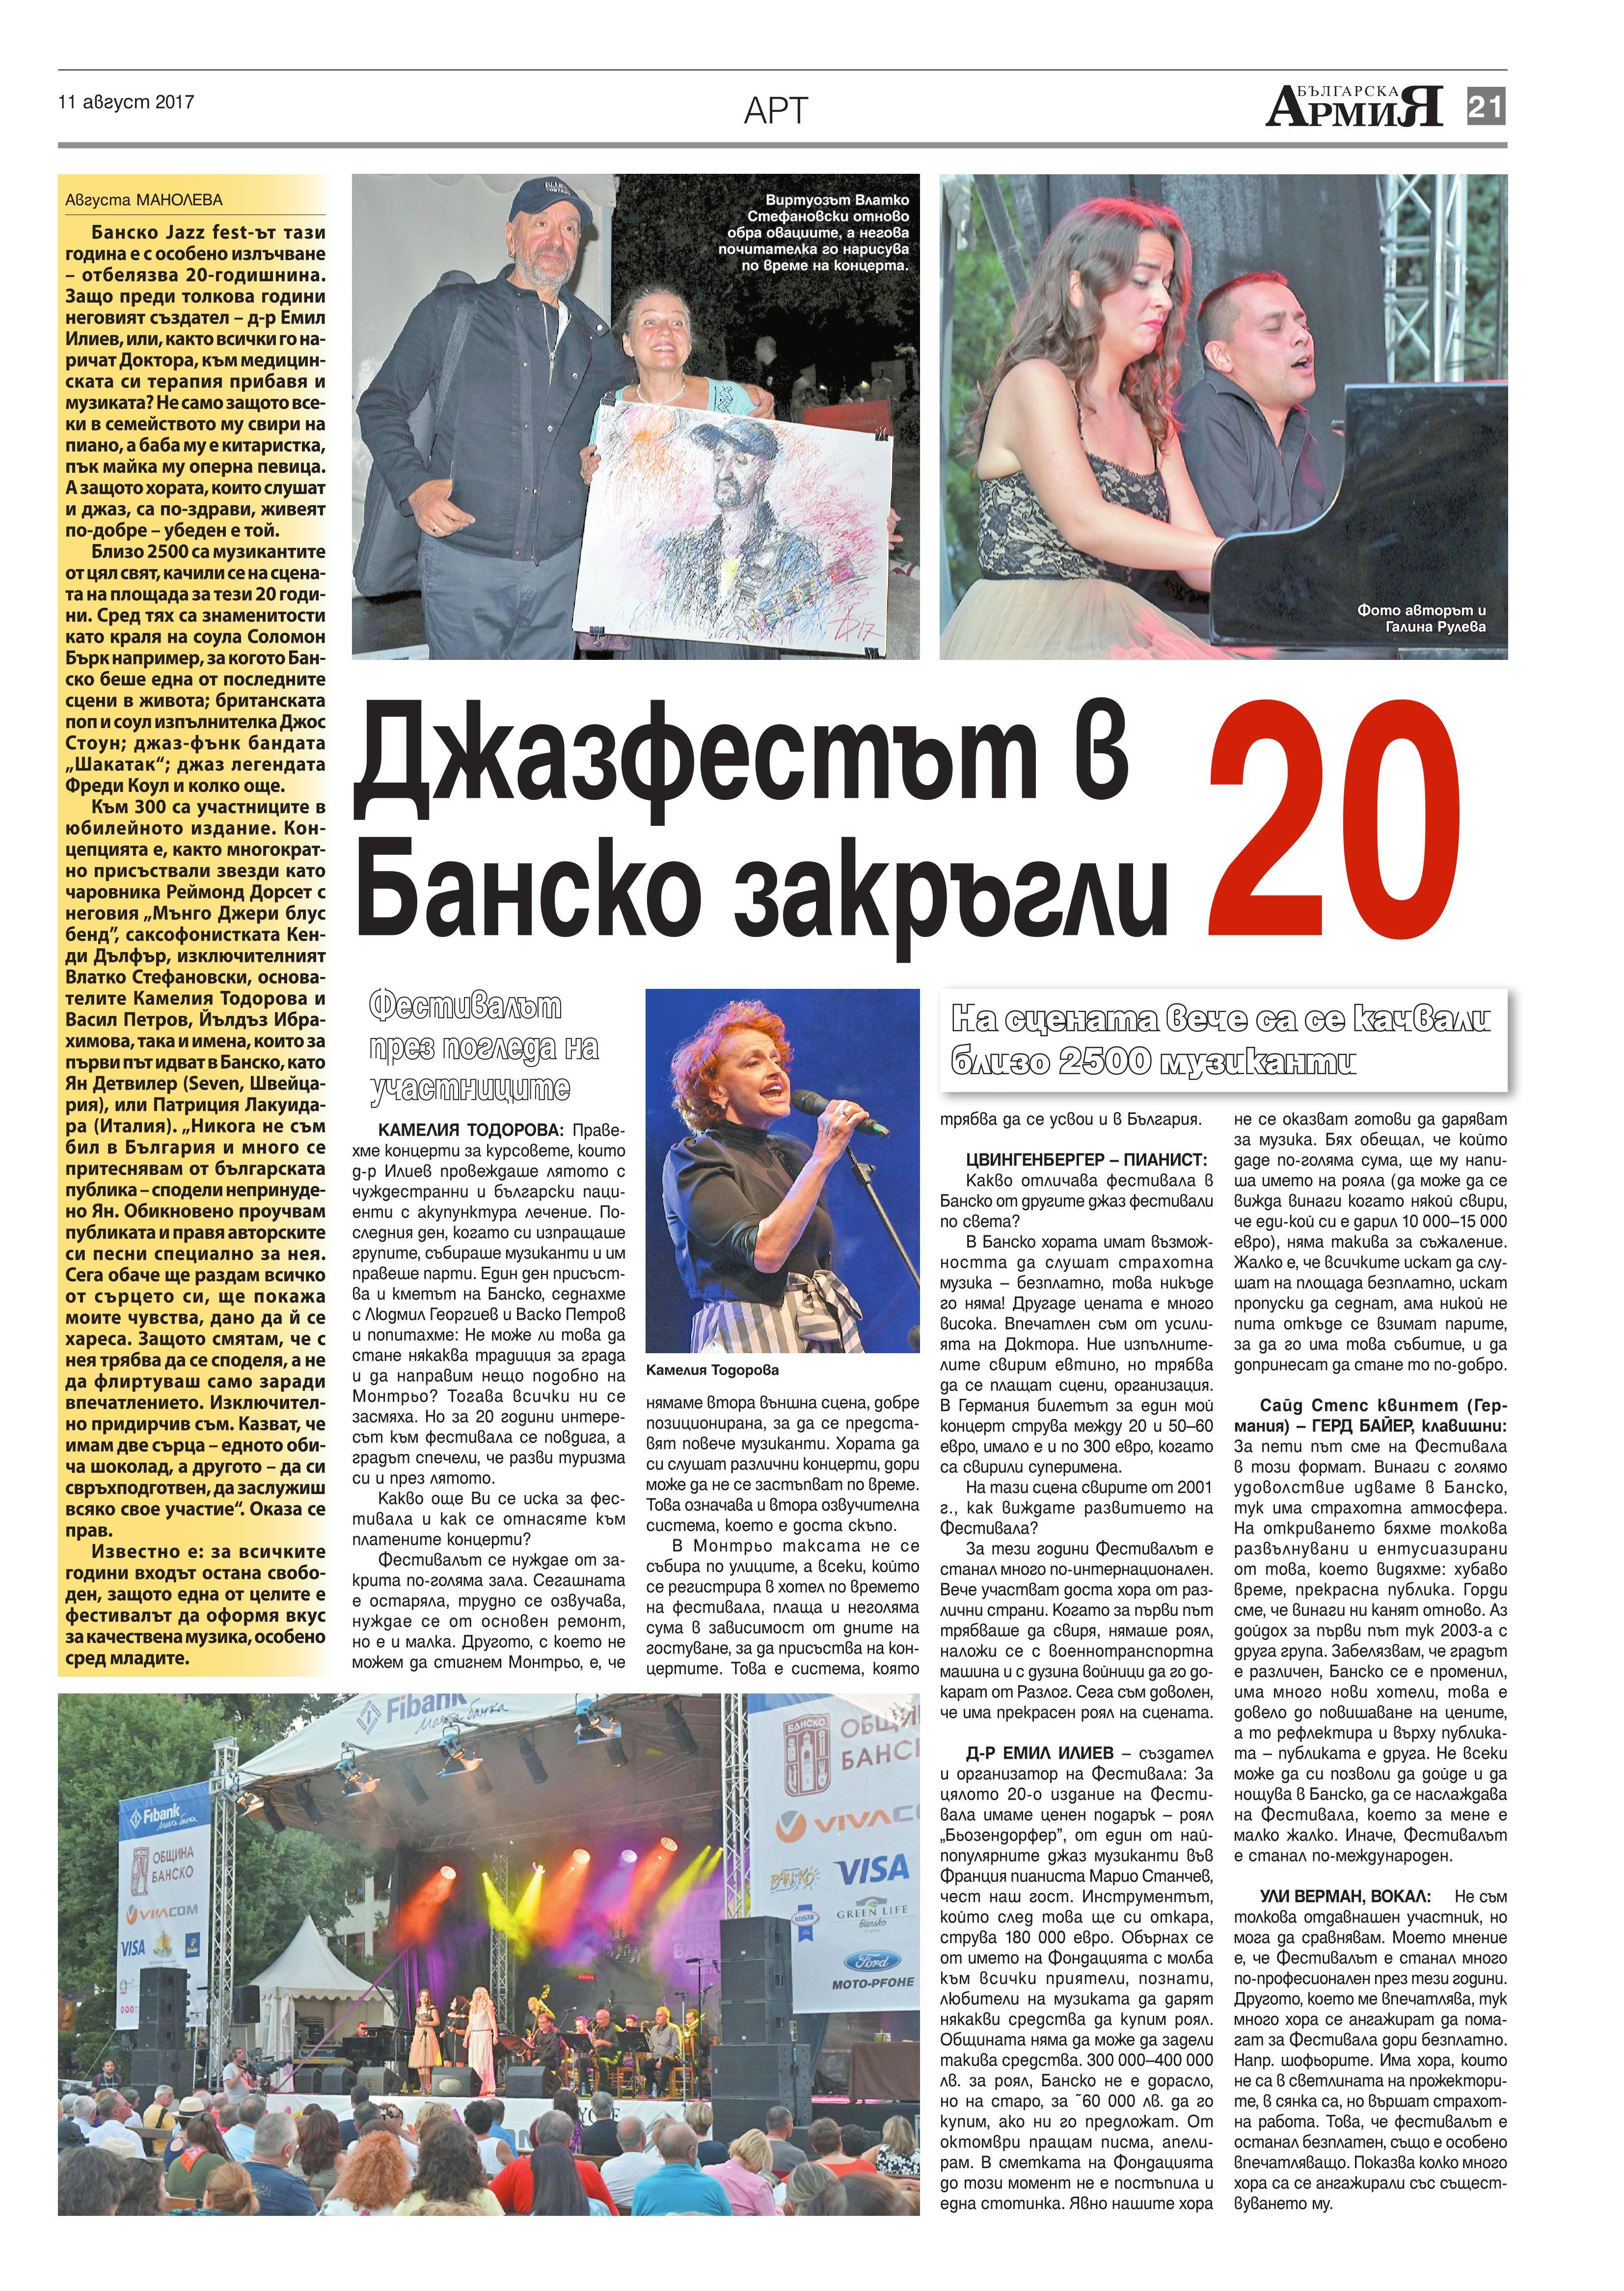 http://armymedia.bg/wp-content/uploads/2015/06/21.page1_-28.jpg